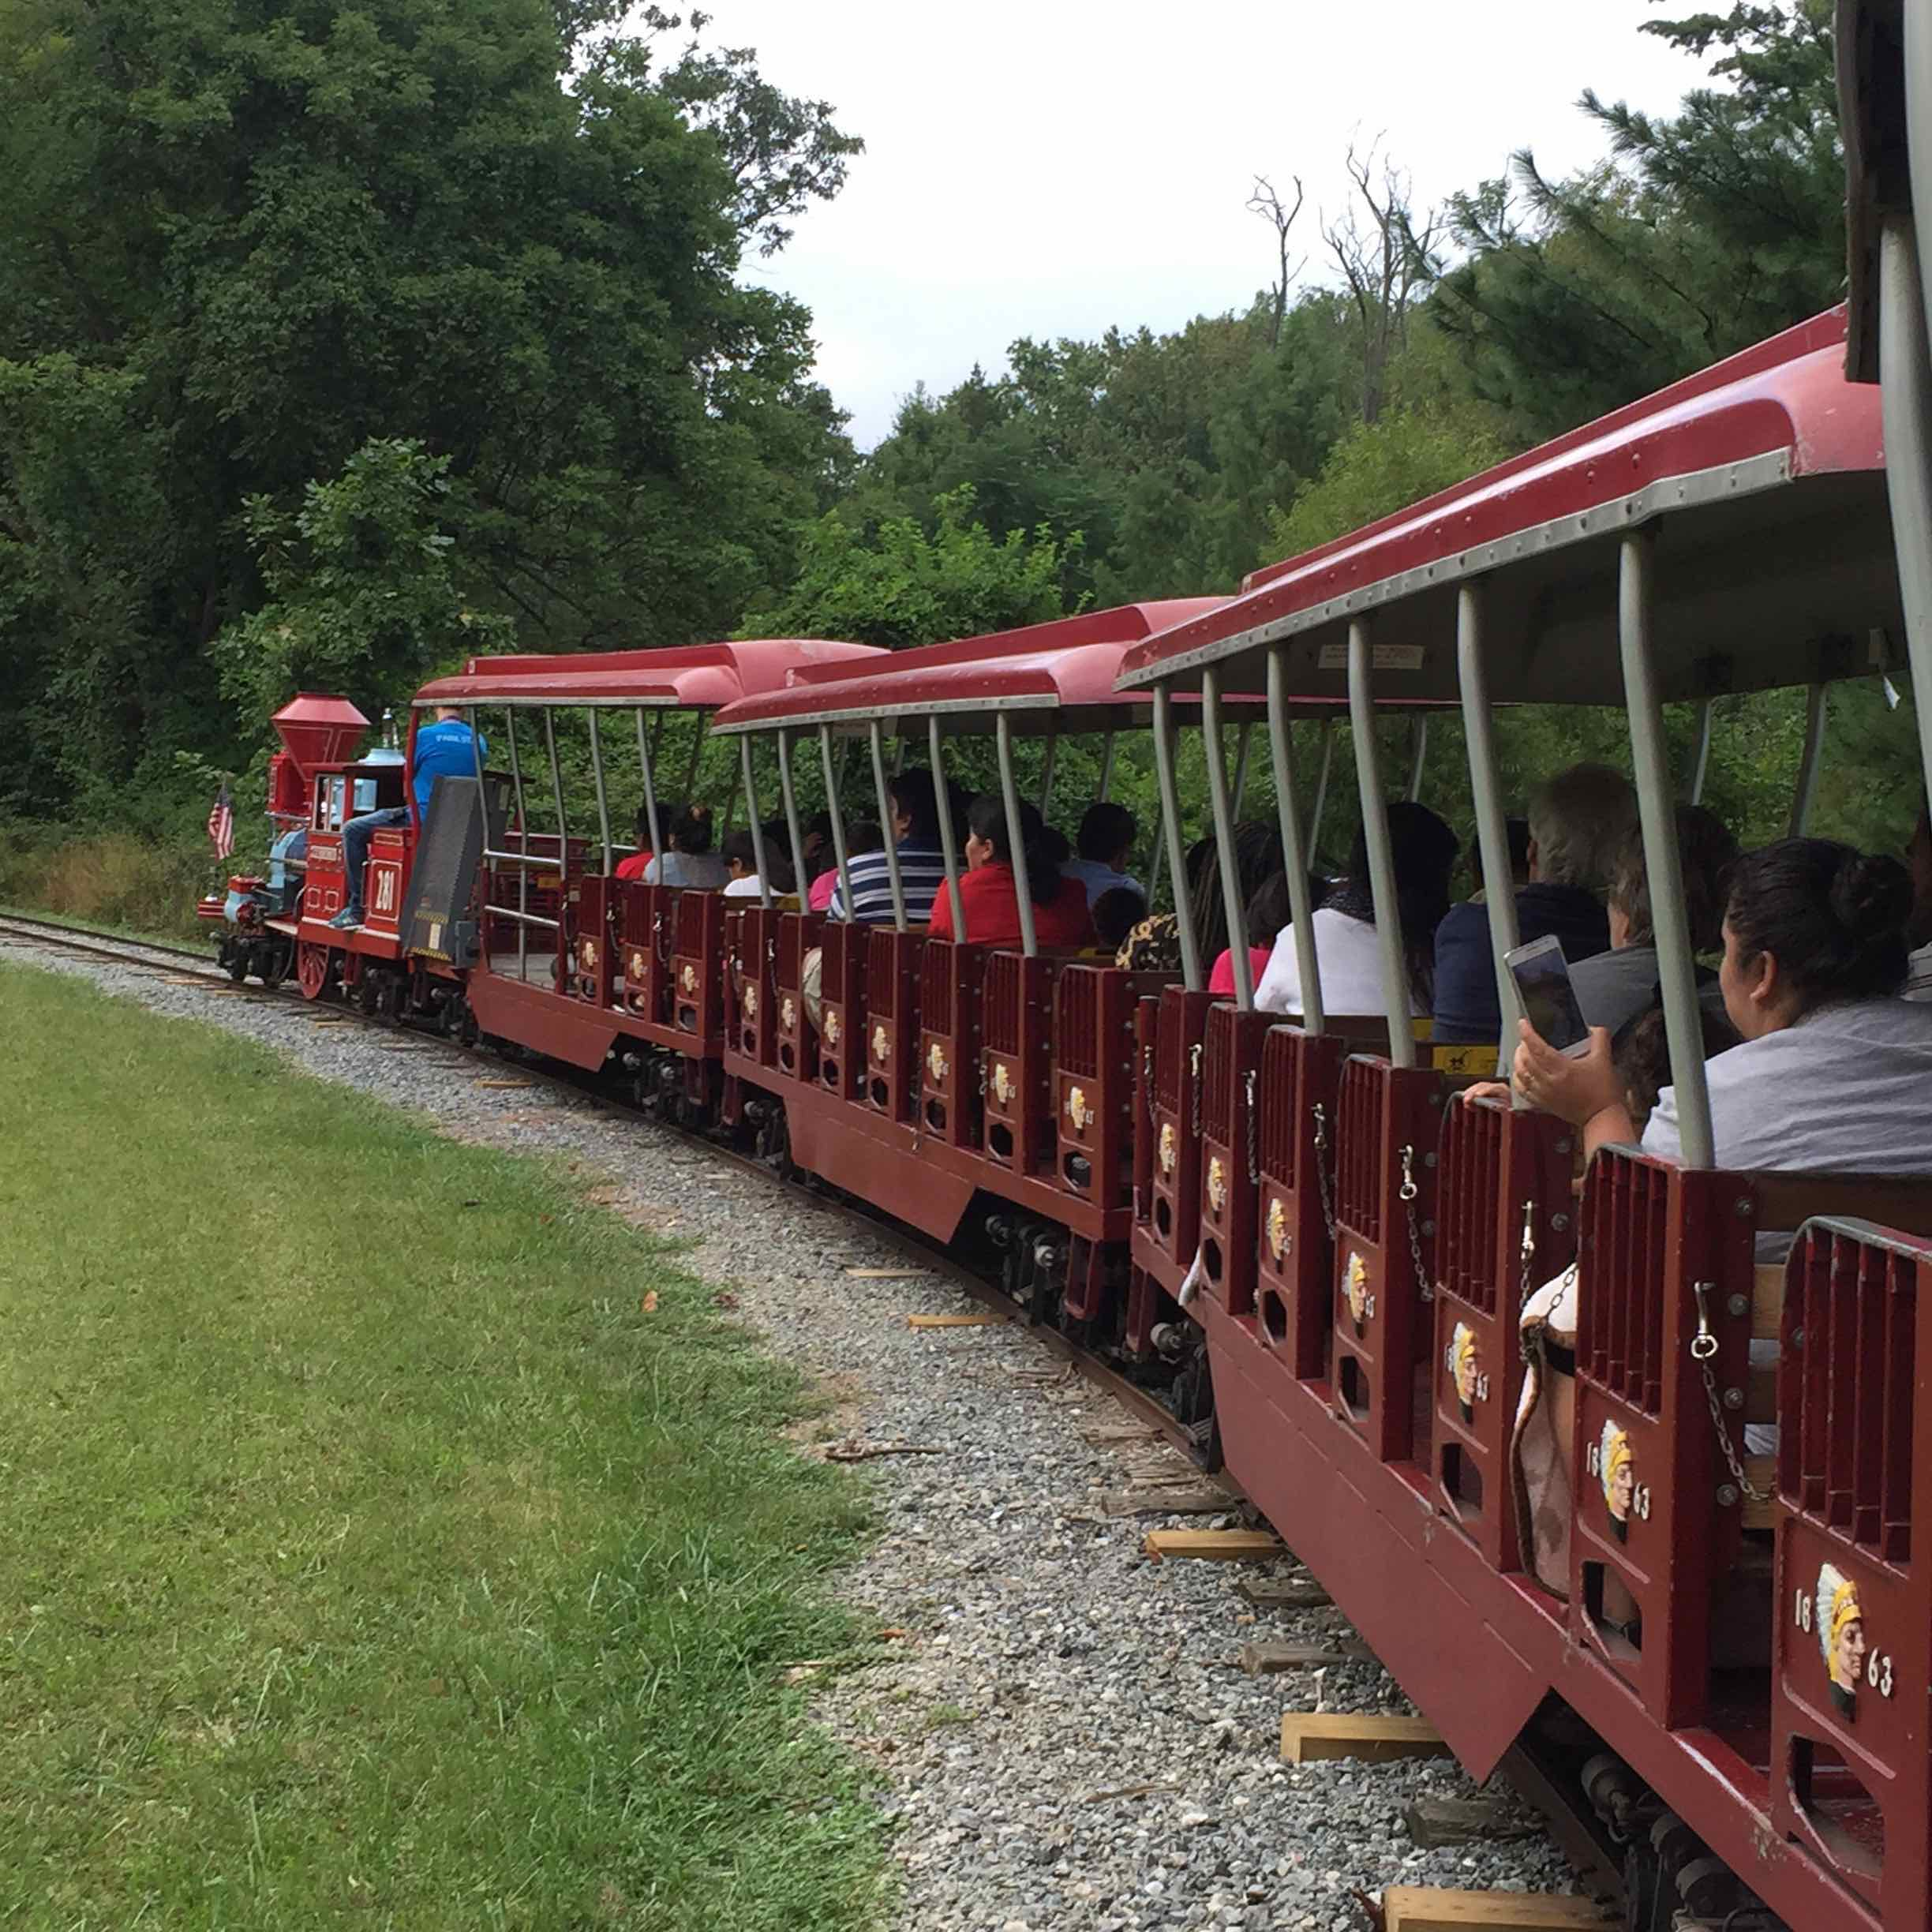 Photo: The miniature train at Wheaton Regional Park taking a turn.